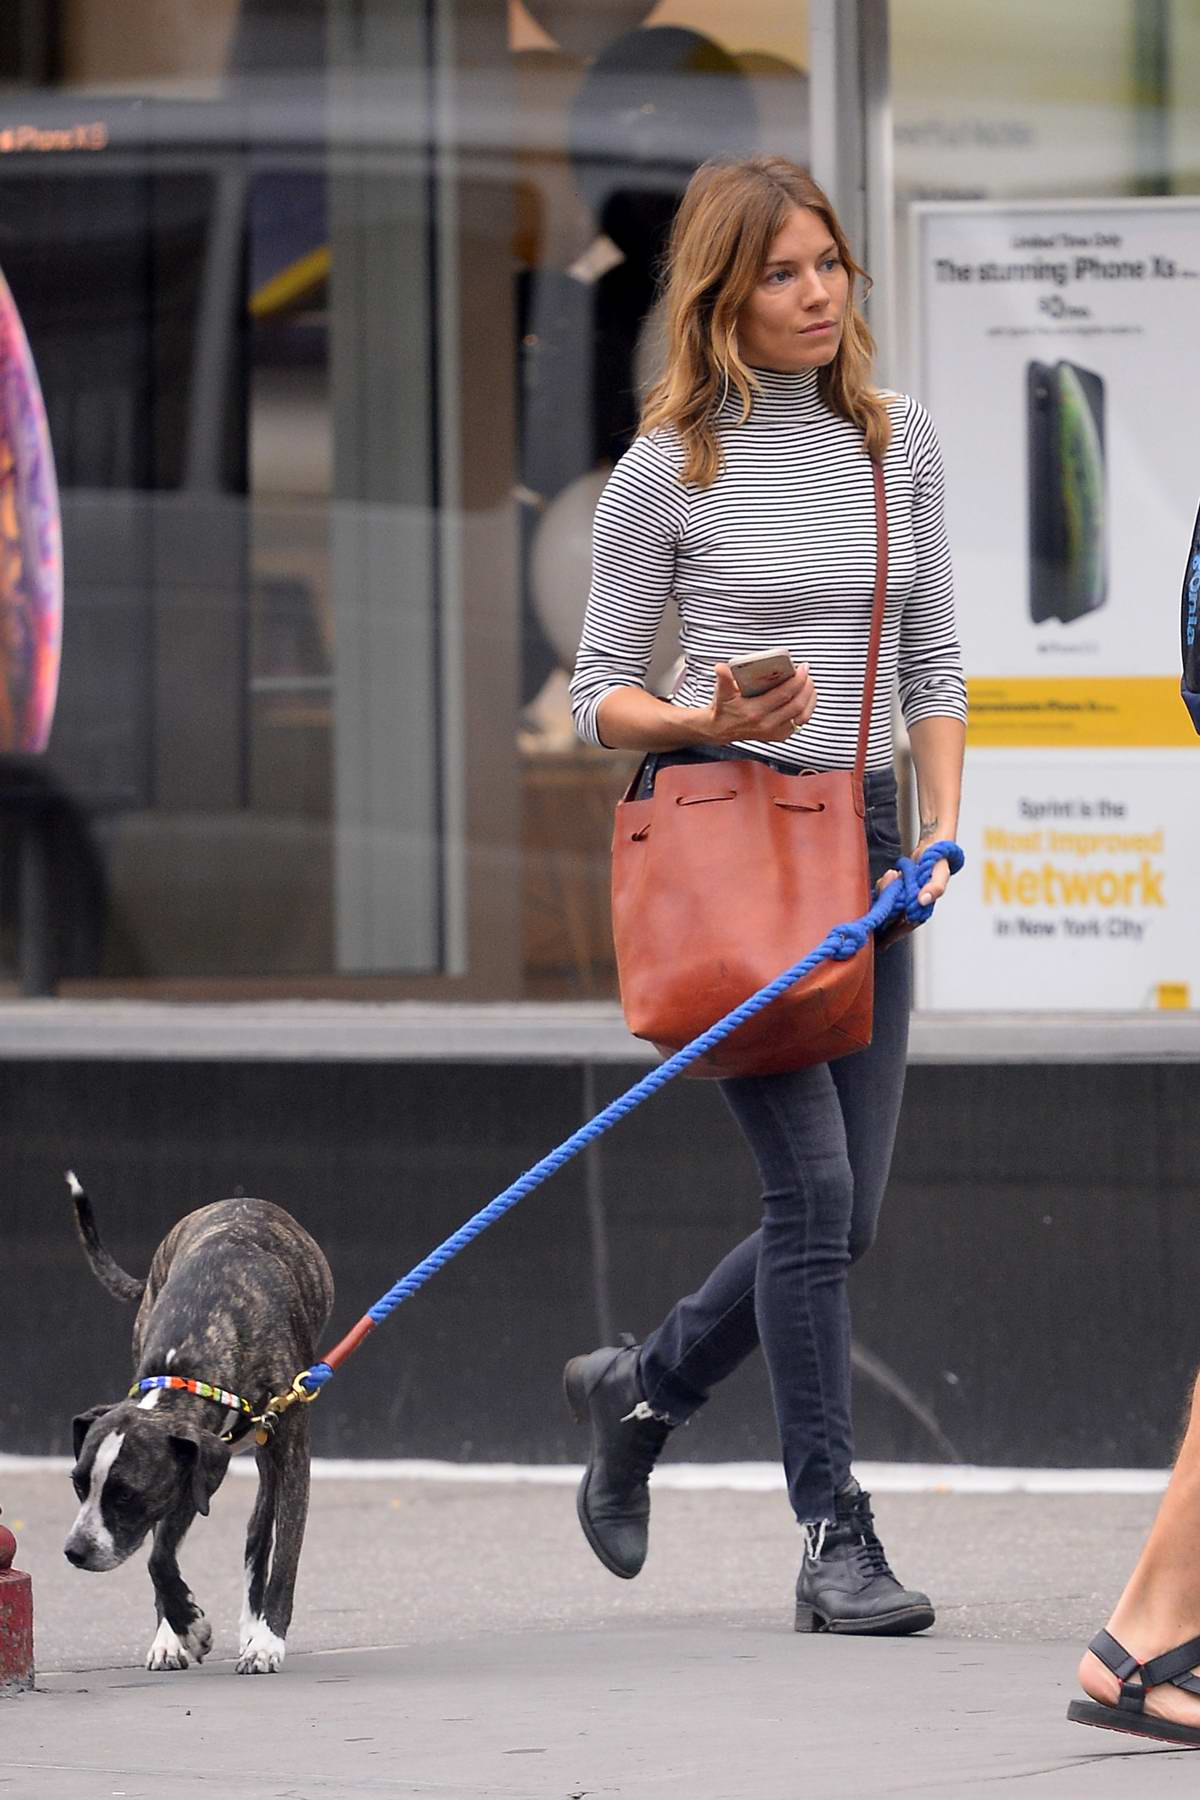 Sienna Miller stepped out in a black and white striped turtleneck and skinny jeans while walking her dog in the West Village, New York City